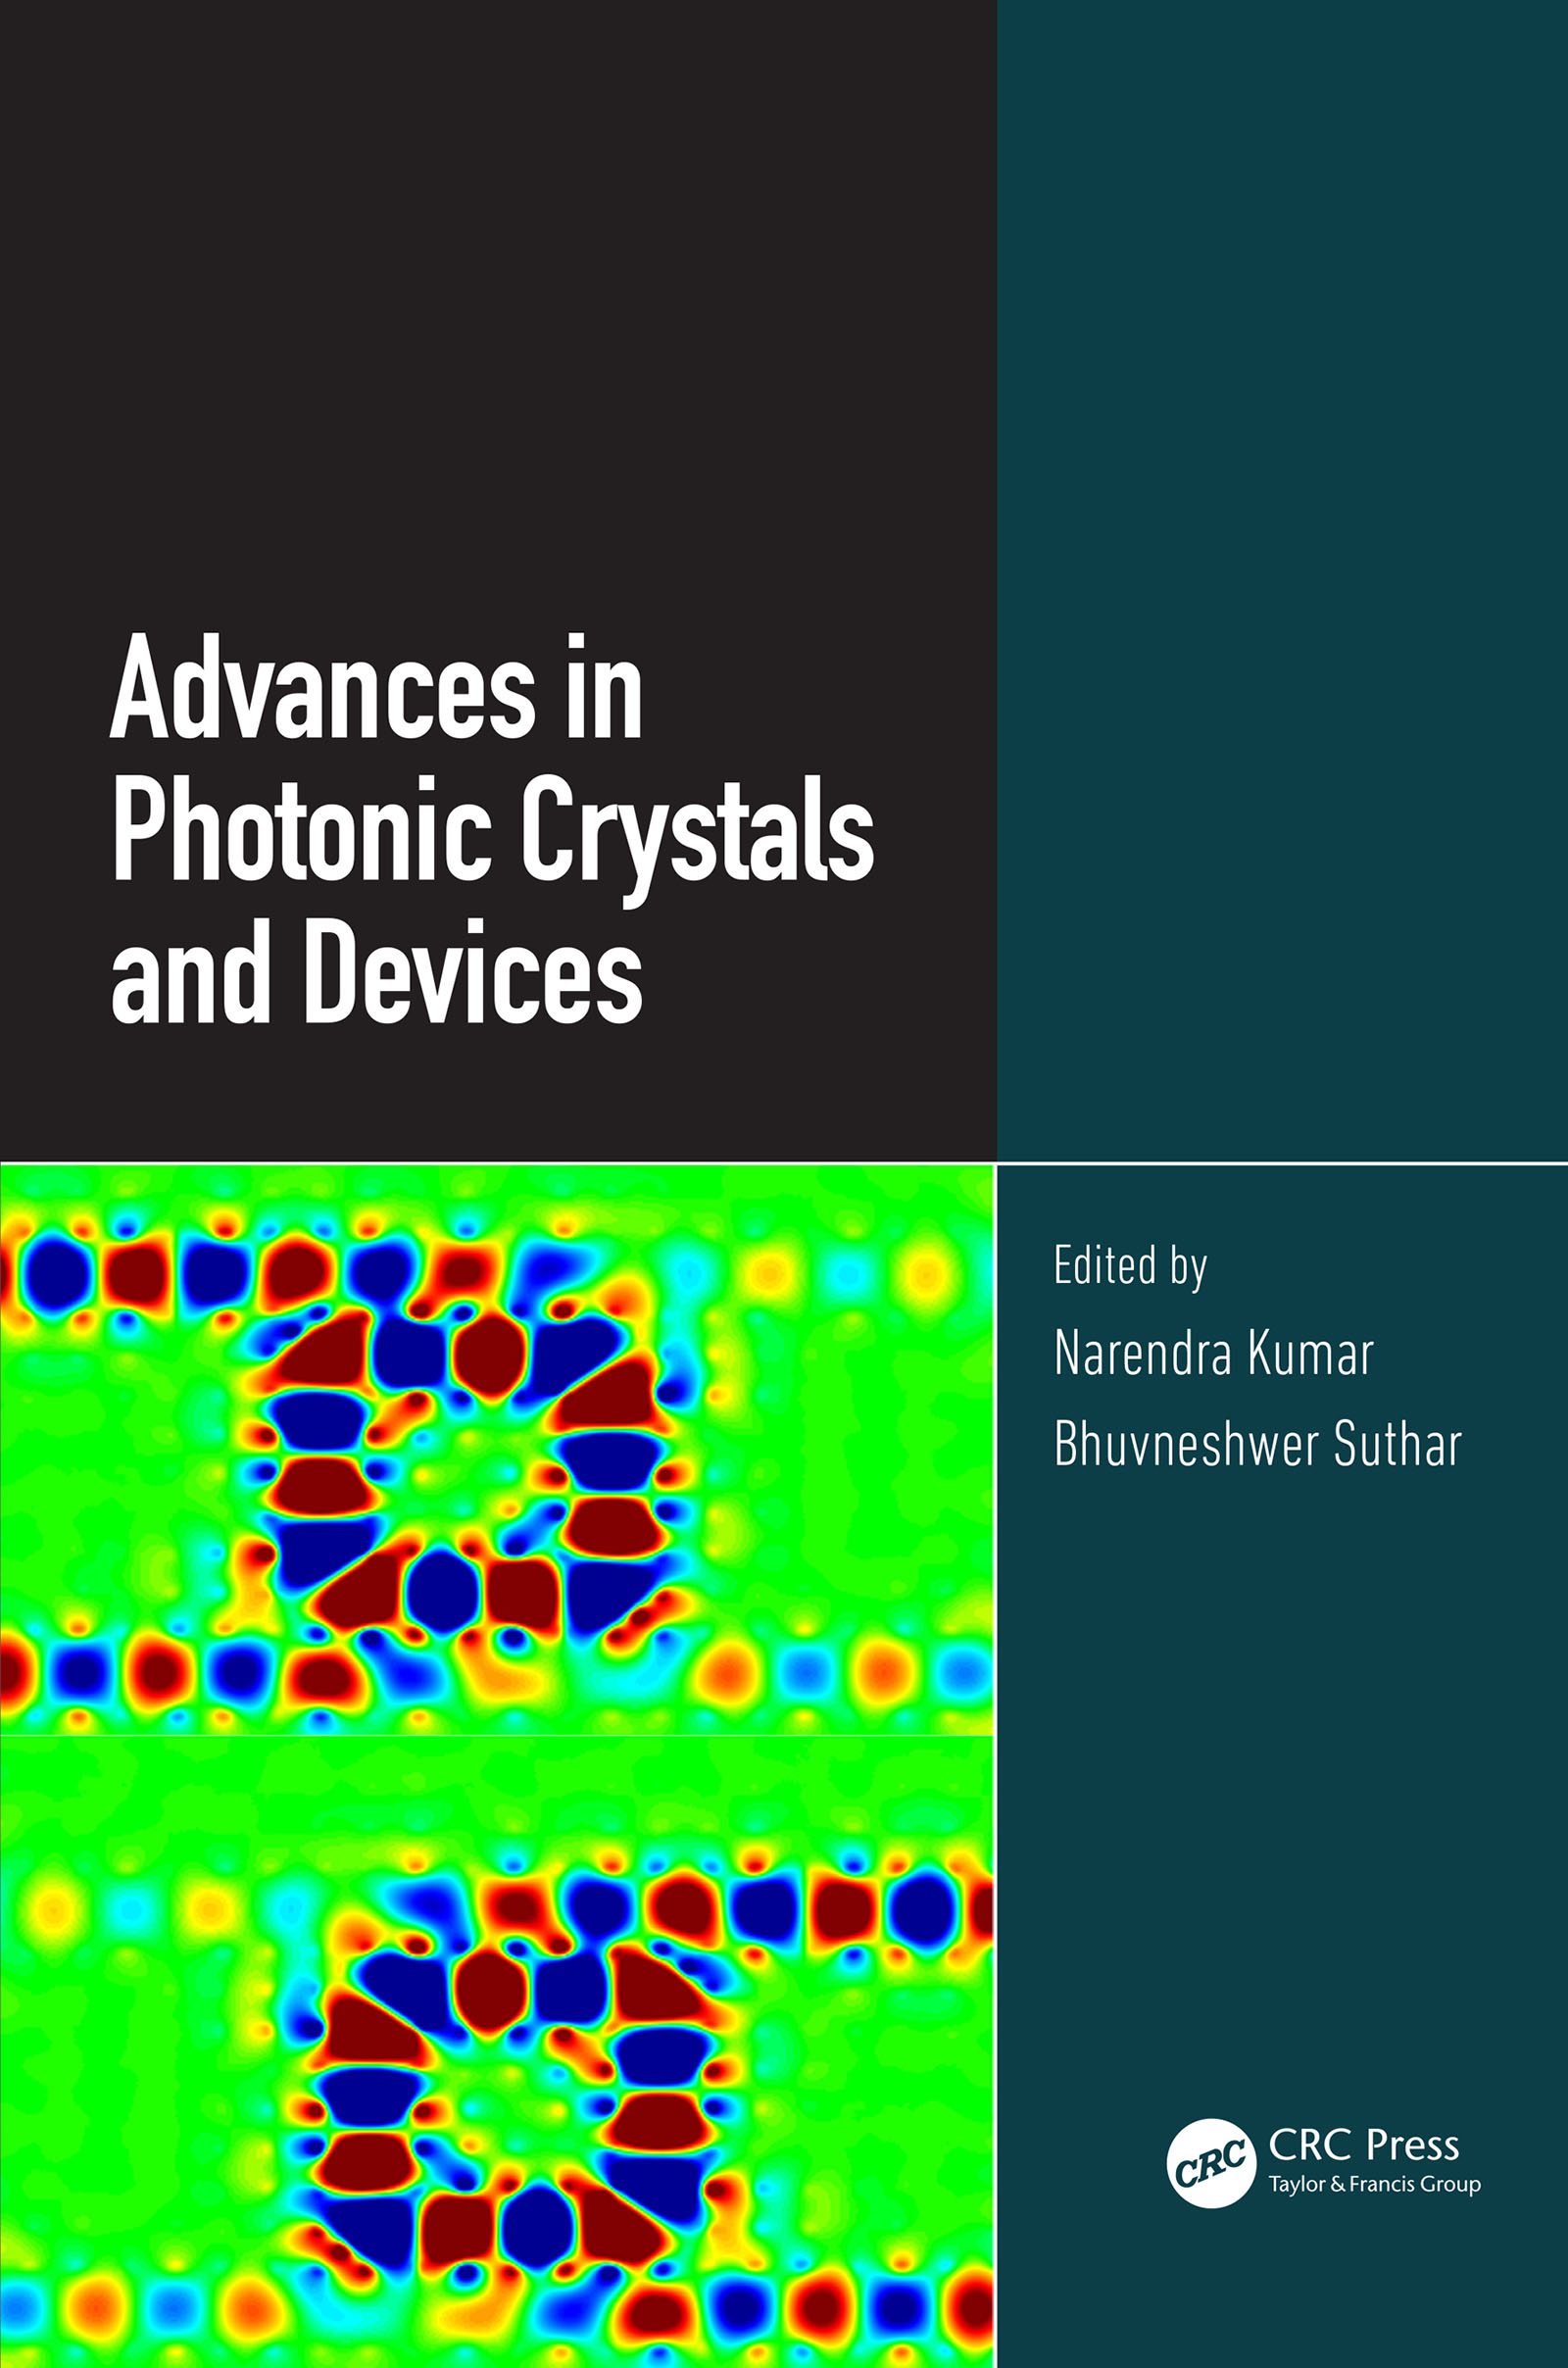 Advances in Photonic Crystals and Devices book cover